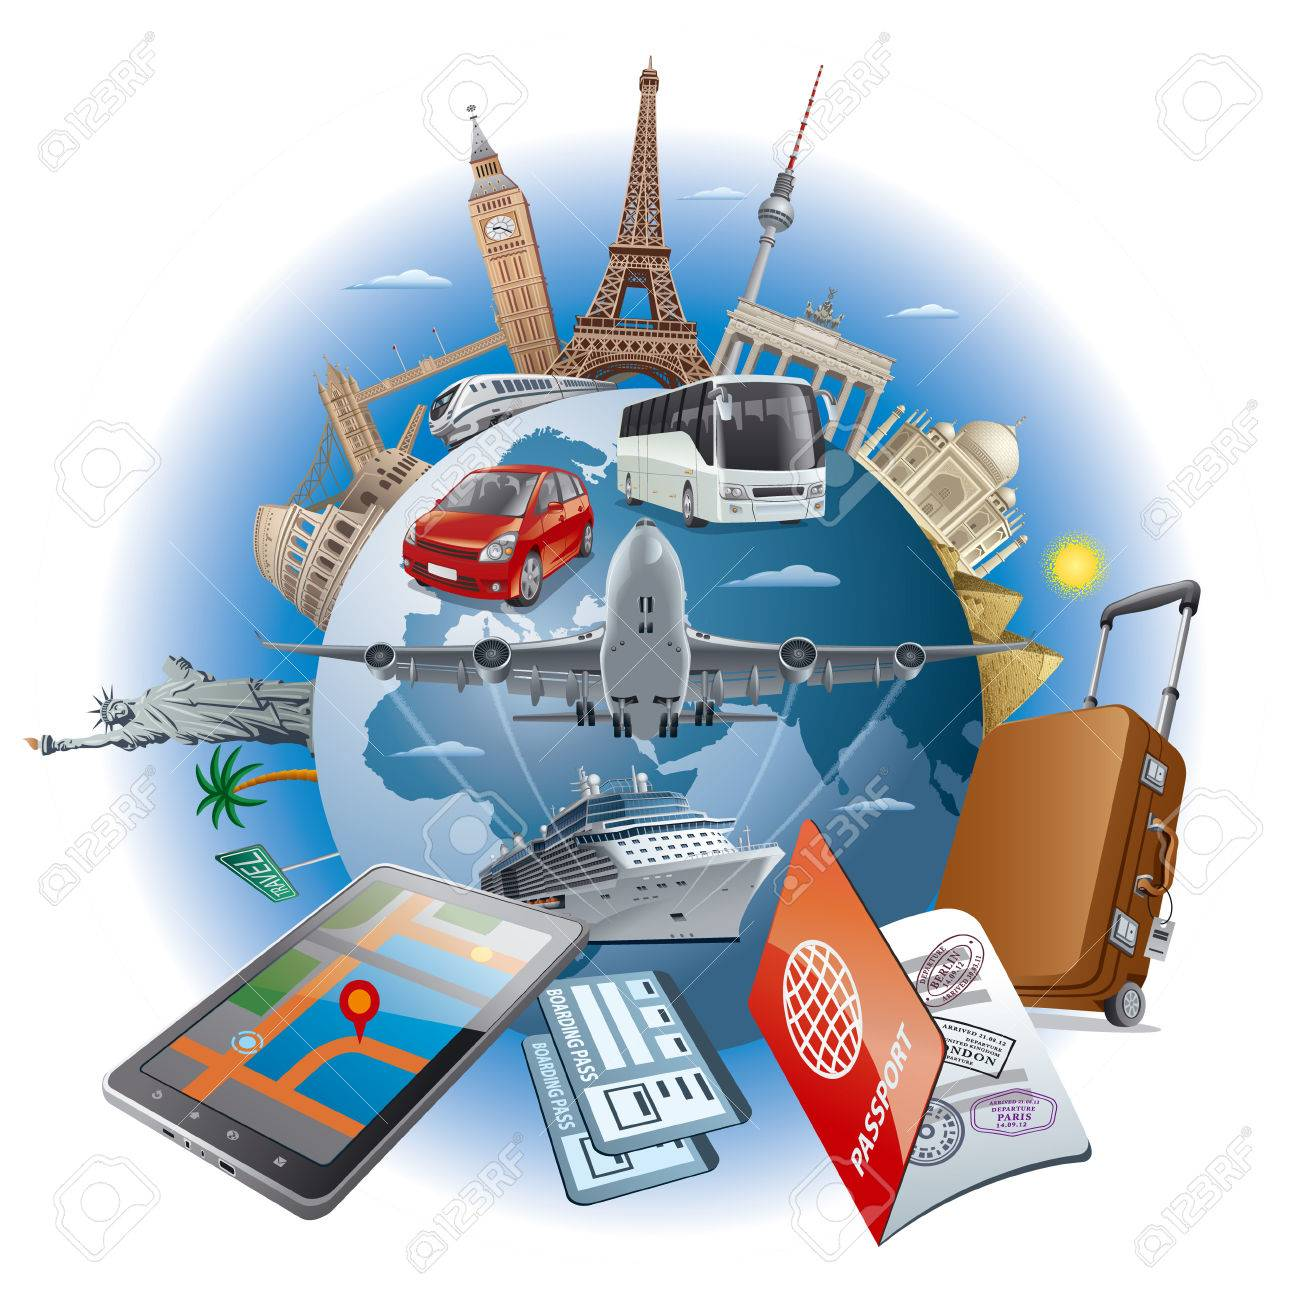 llustration of concept travel around the world famous landmarks by transport air, car, train, cruise ship - 61116264